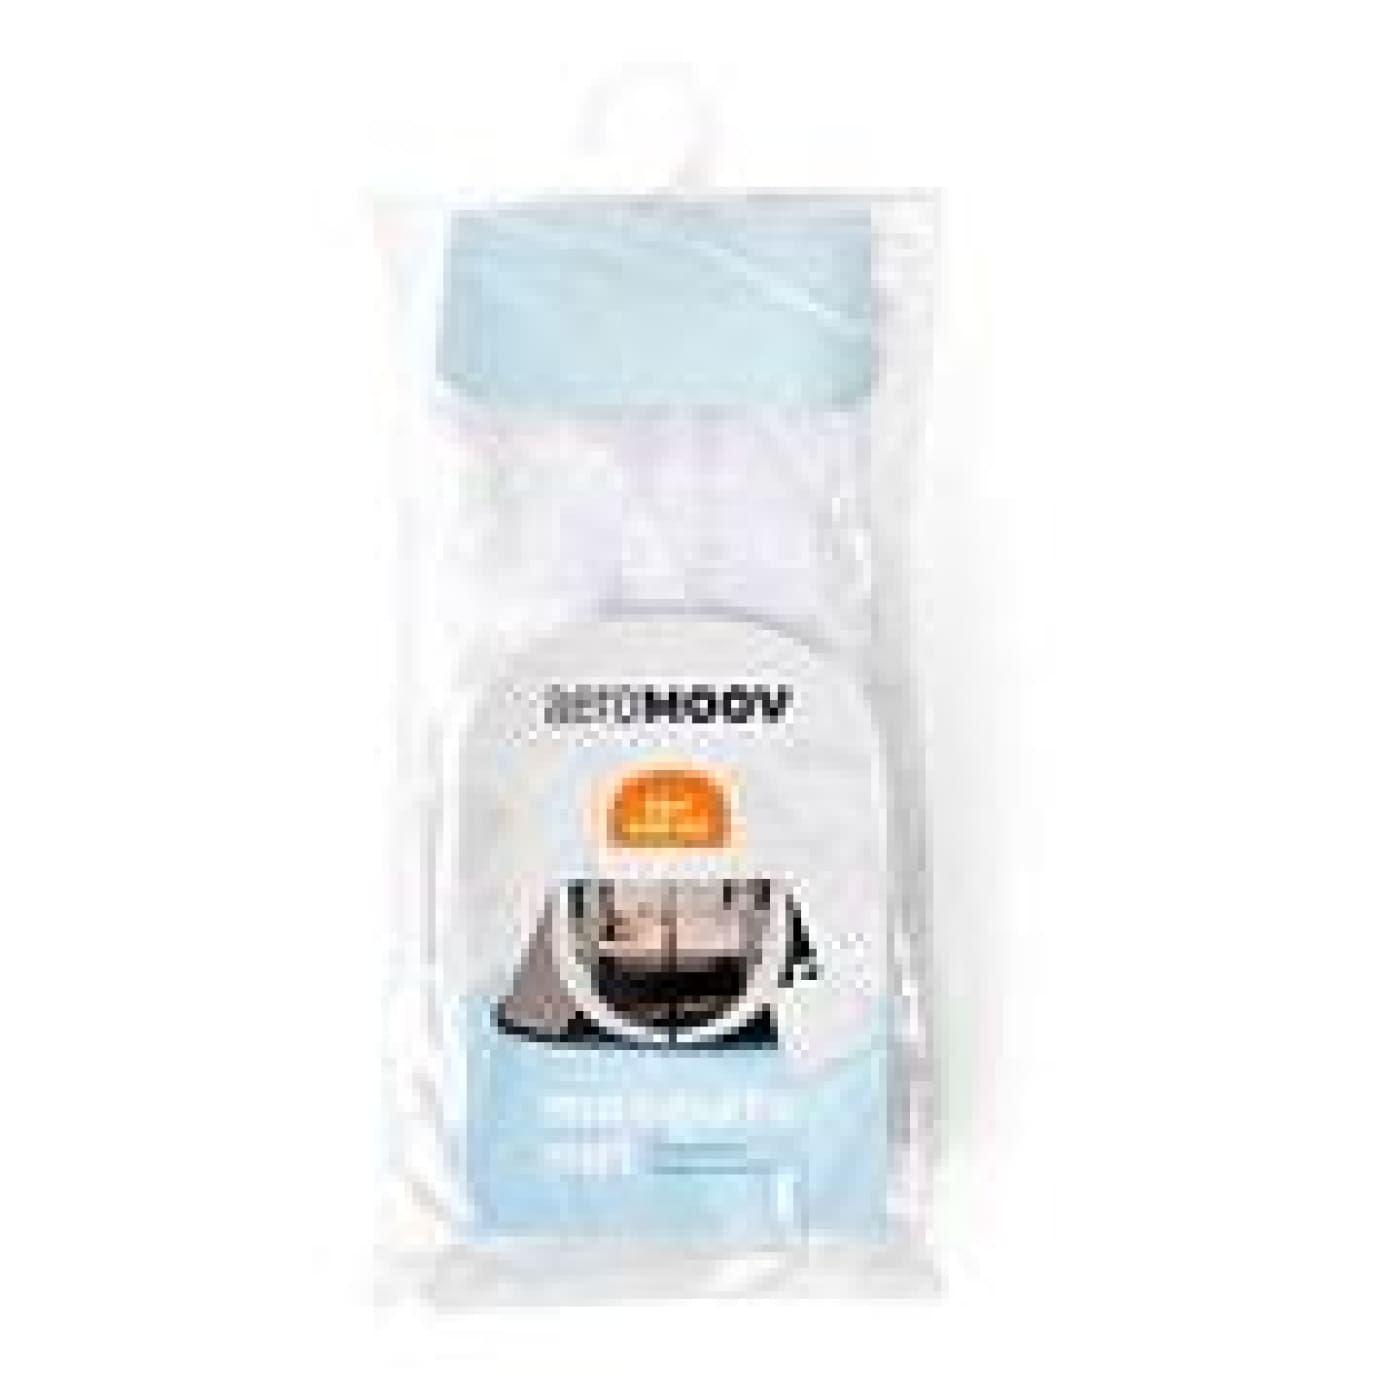 AeroMoov Instant Travel Cot Mosquito Net - White - ON THE GO - PORTACOTS/ACCESSORIES